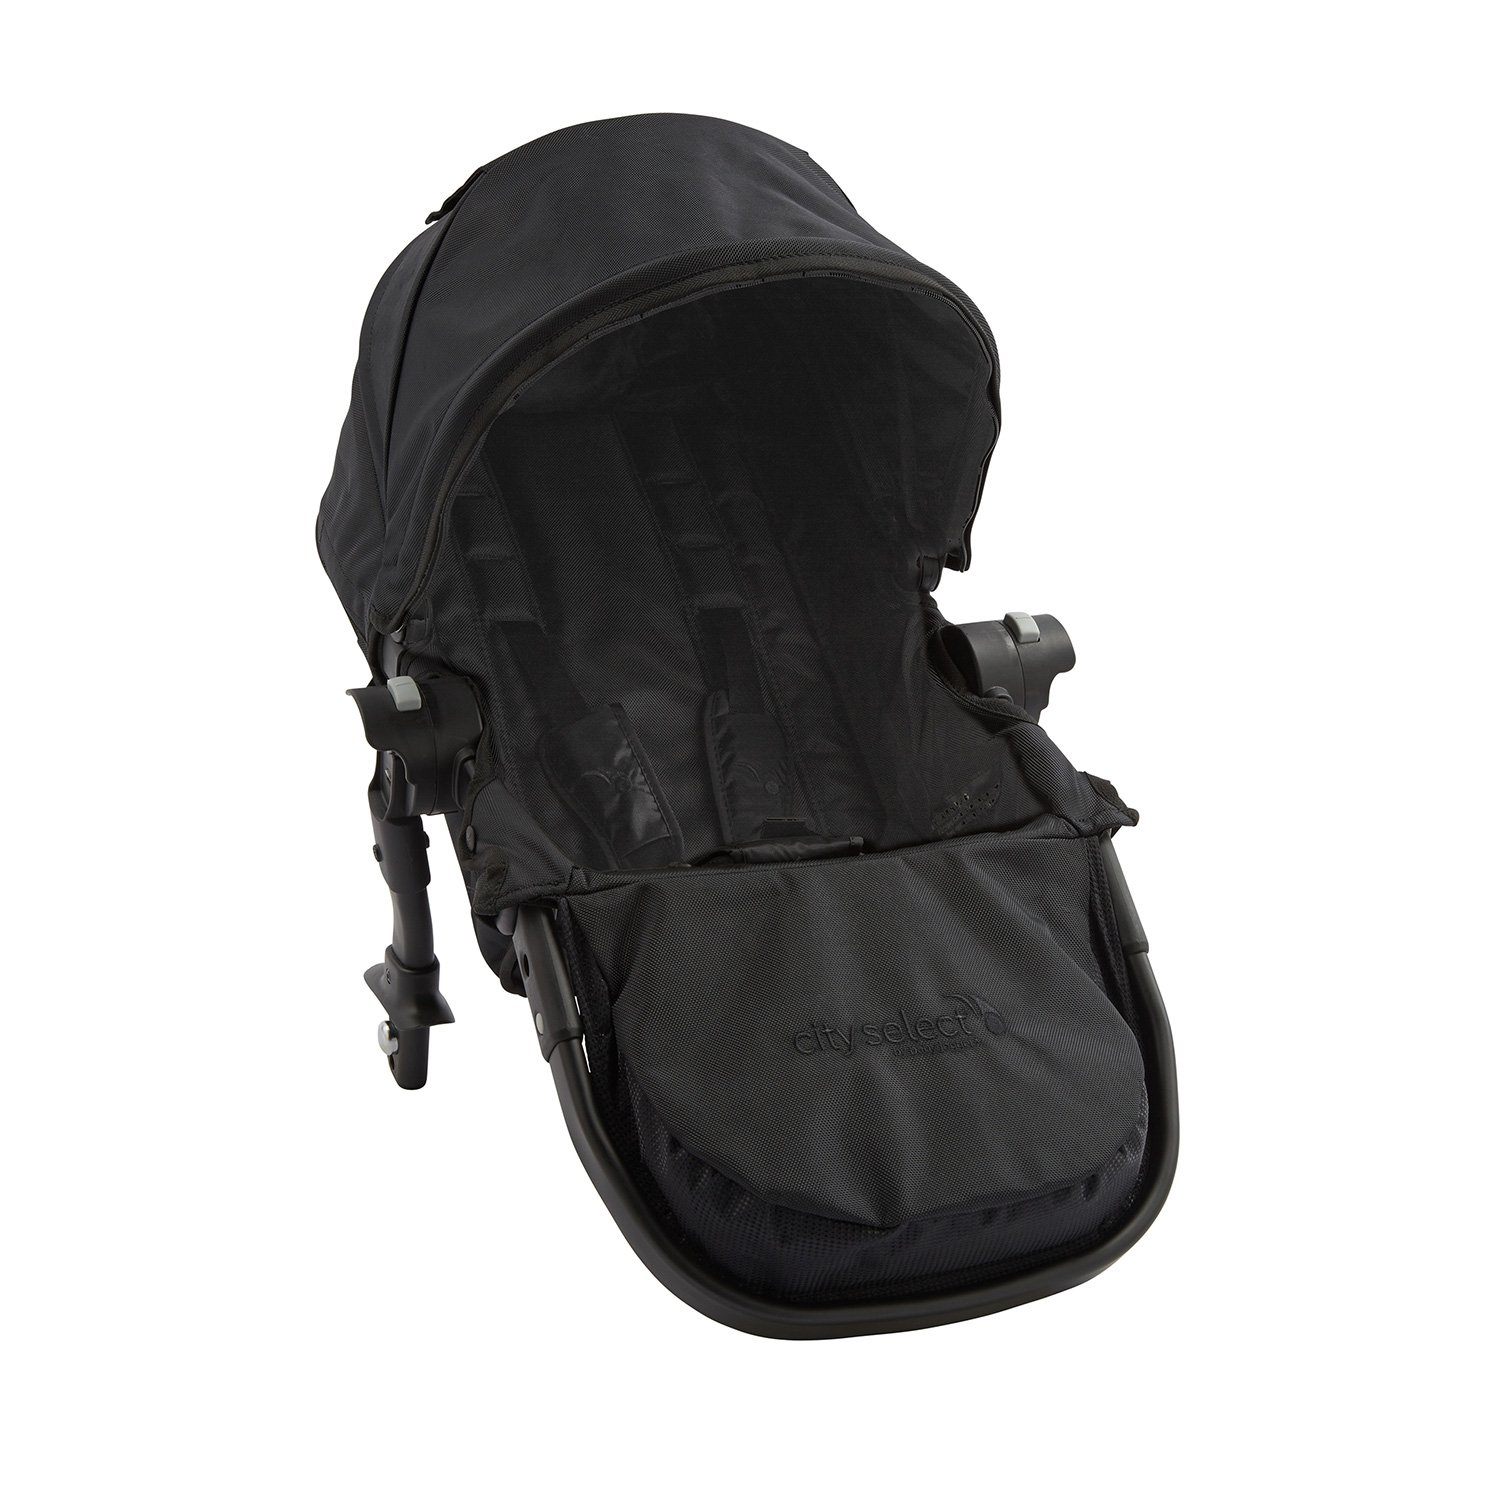 Baby Jogger City Select Second Seat Kit, Black by Baby Jogger (Image #3)